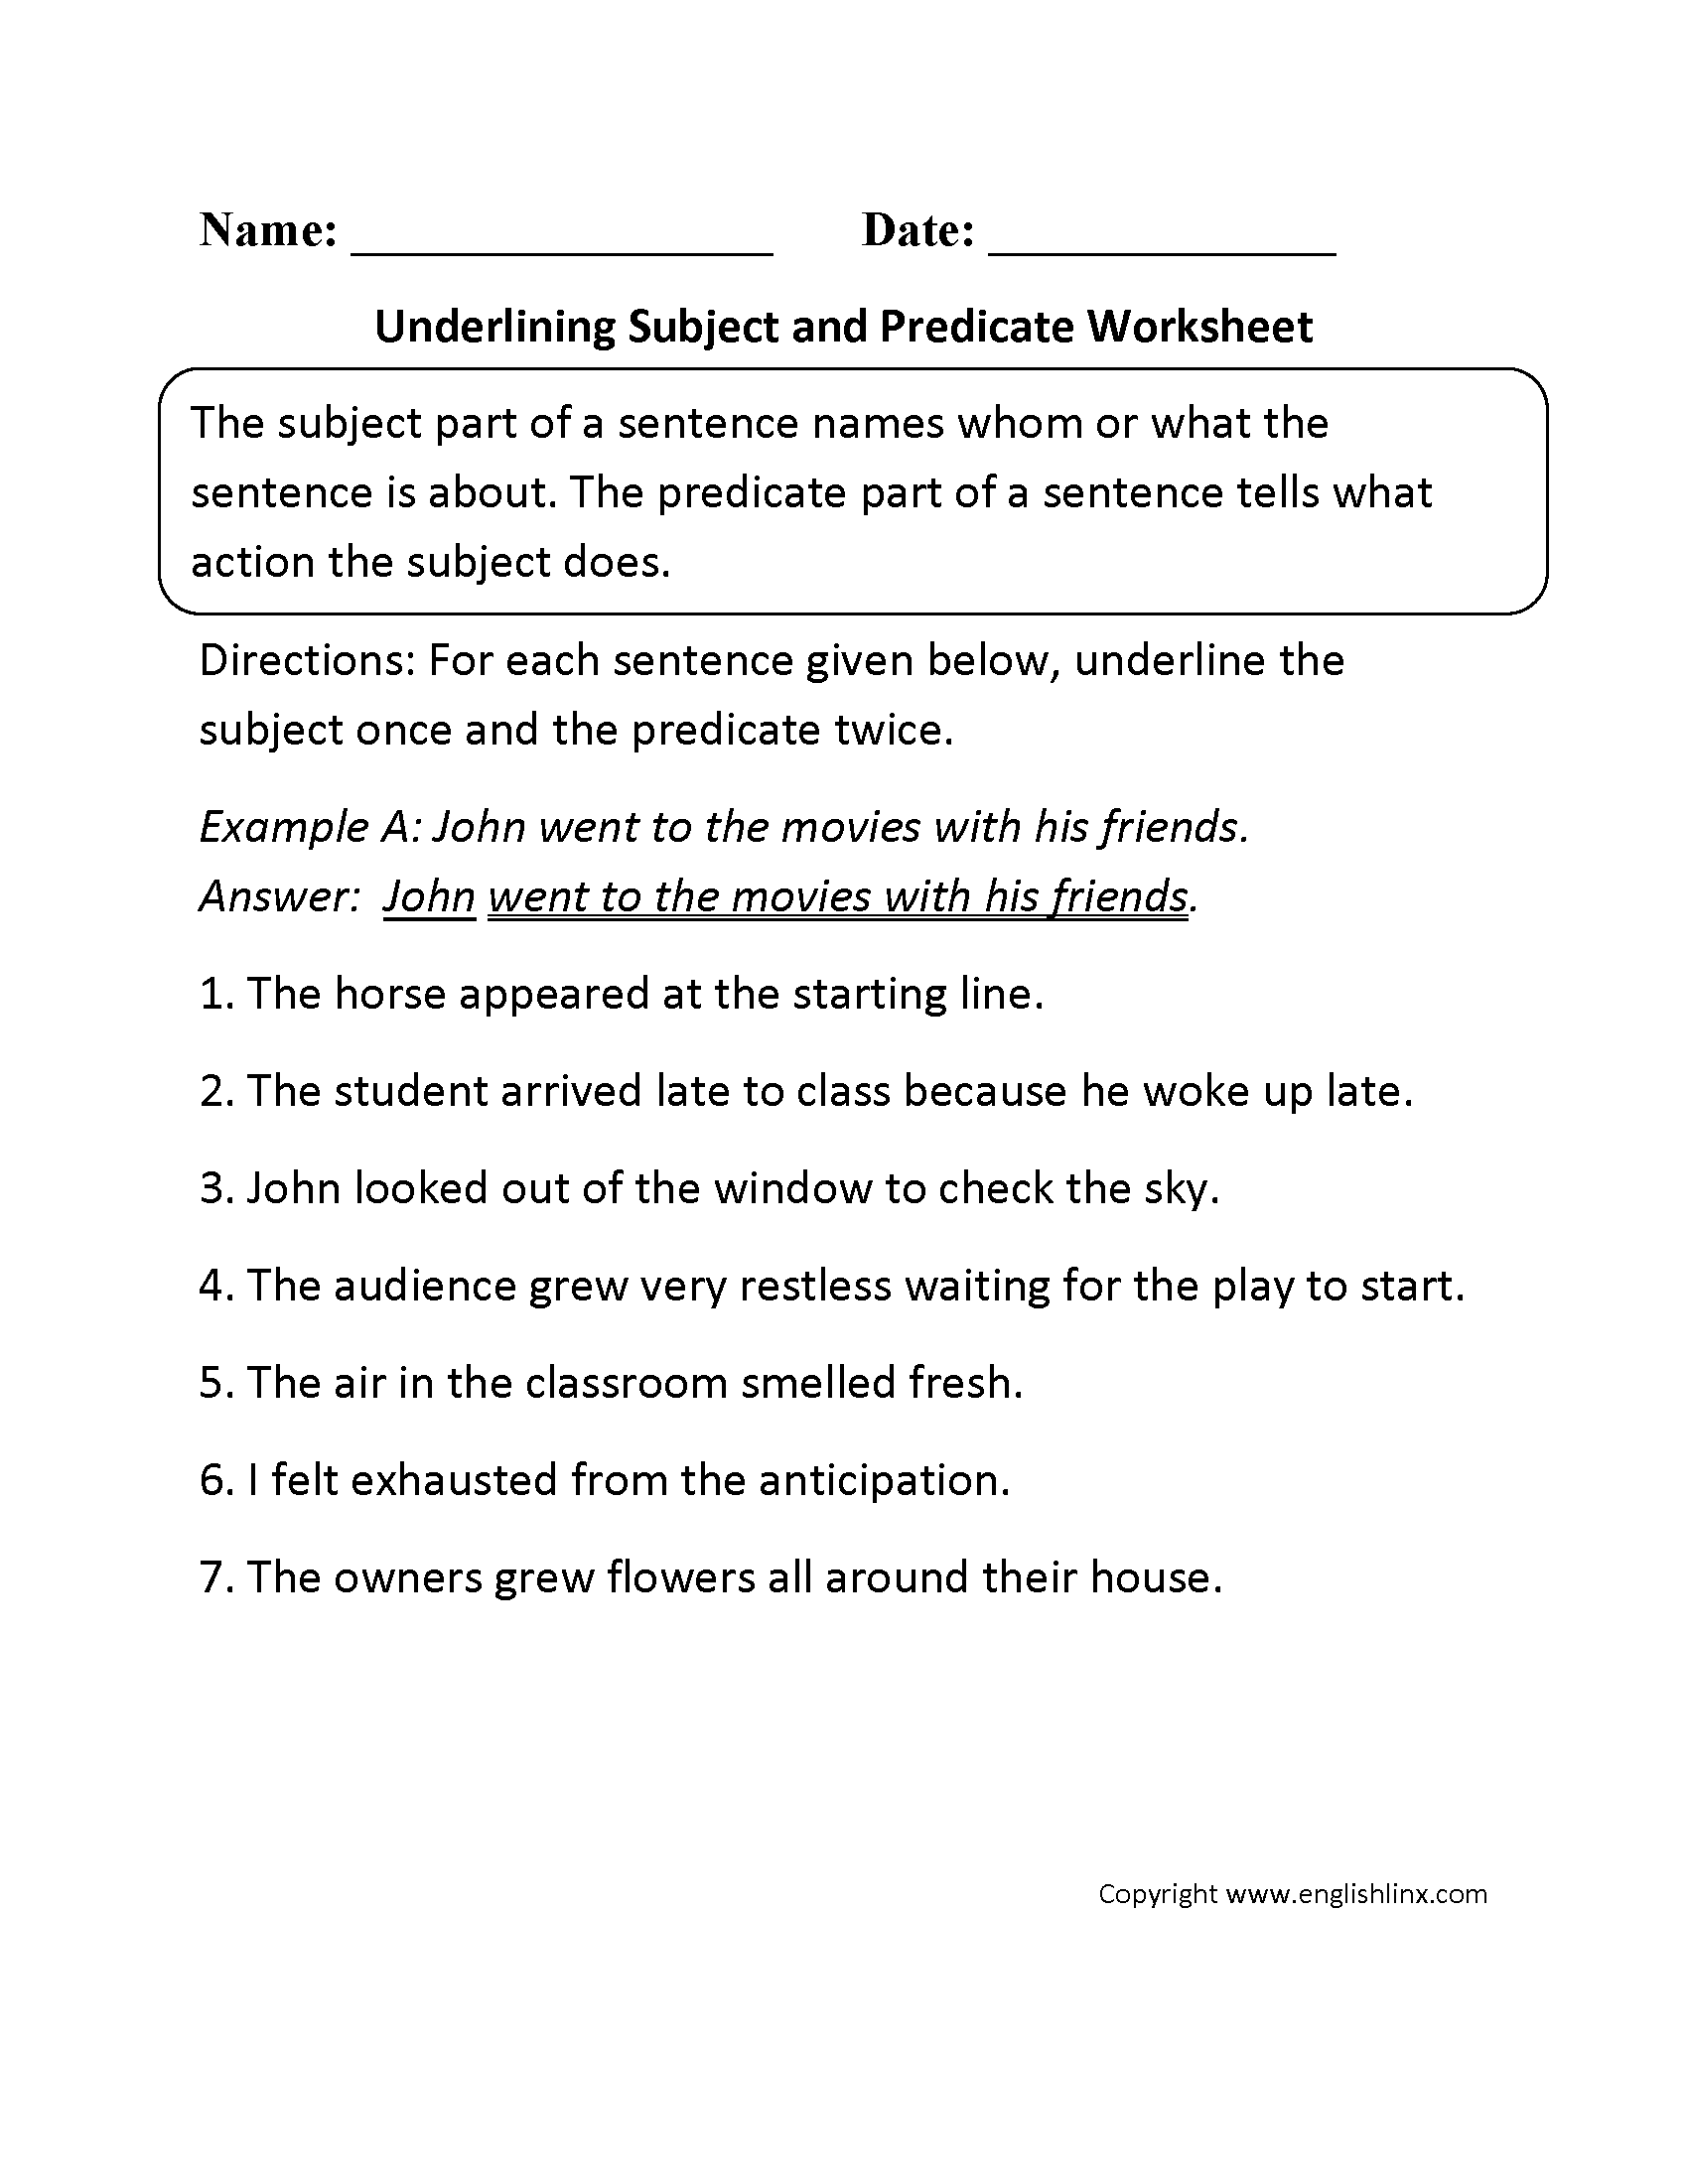 worksheet Compound Subjects And Predicates Worksheets simple and complete subjects predicates worksheet abitlikethis parts of a sentence worksheets subject predicate worksheets